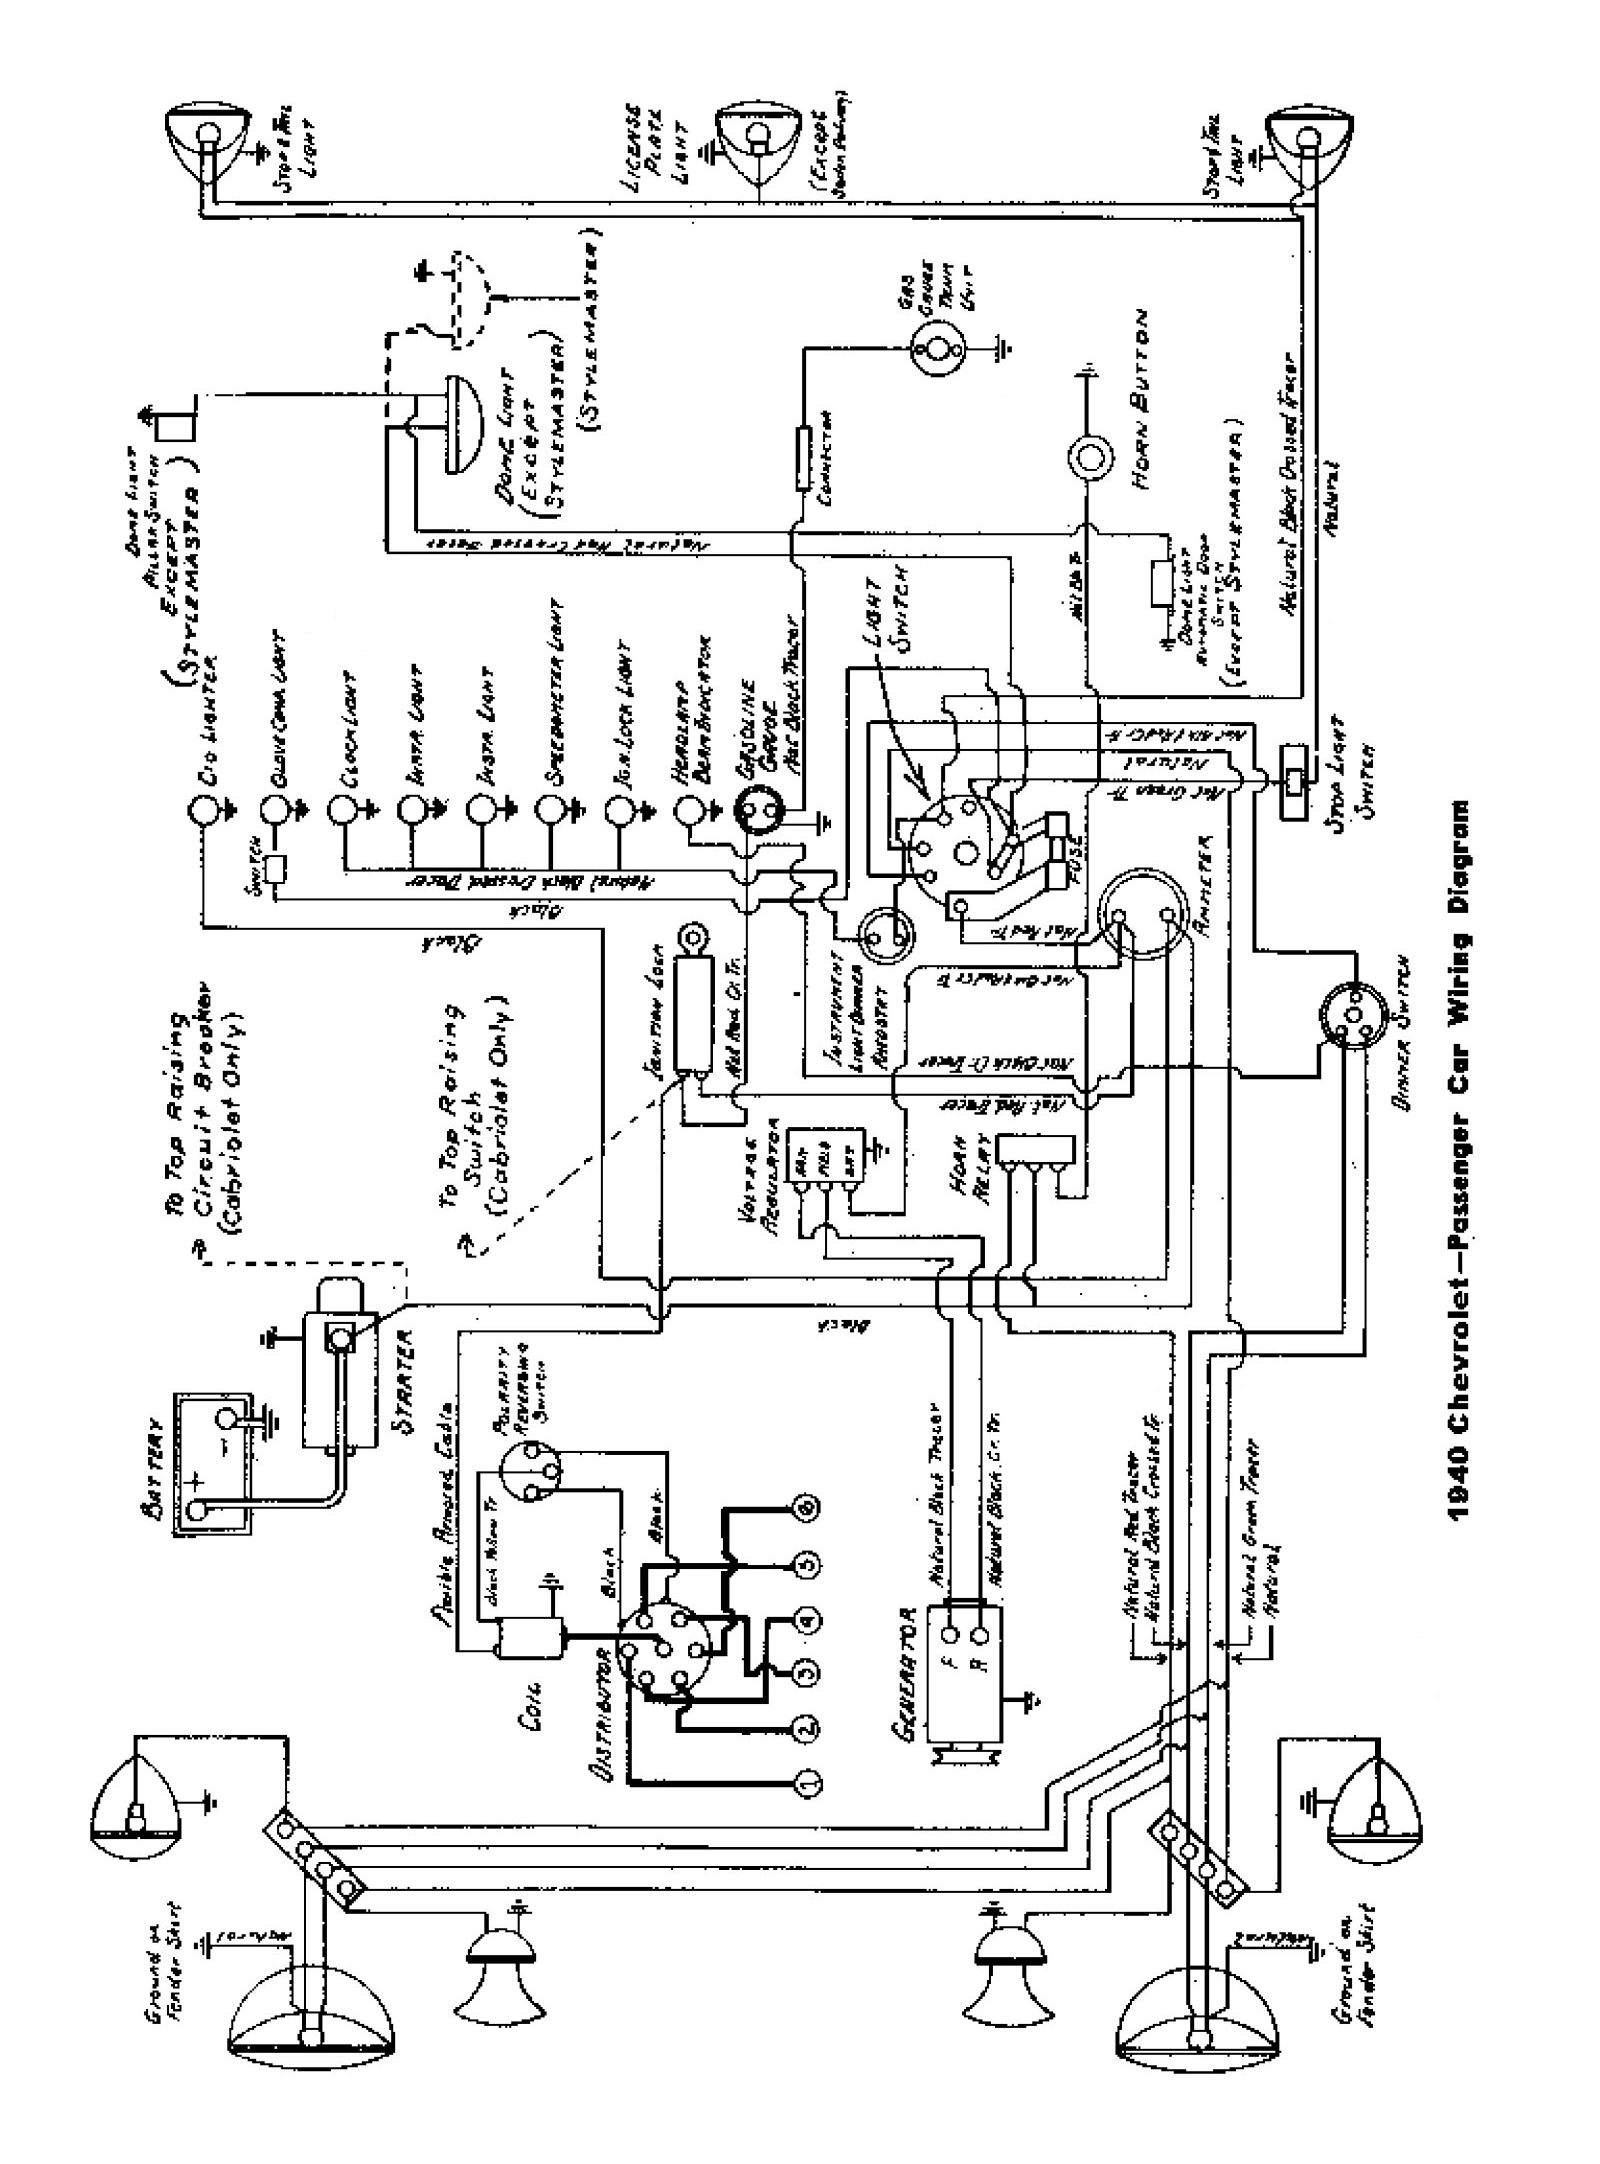 1940 Oldsmobile Wiring Schematic Archive Of Automotive Engine Cooling Diagram Chevy Diagrams Rh Oldcarmanualproject Com